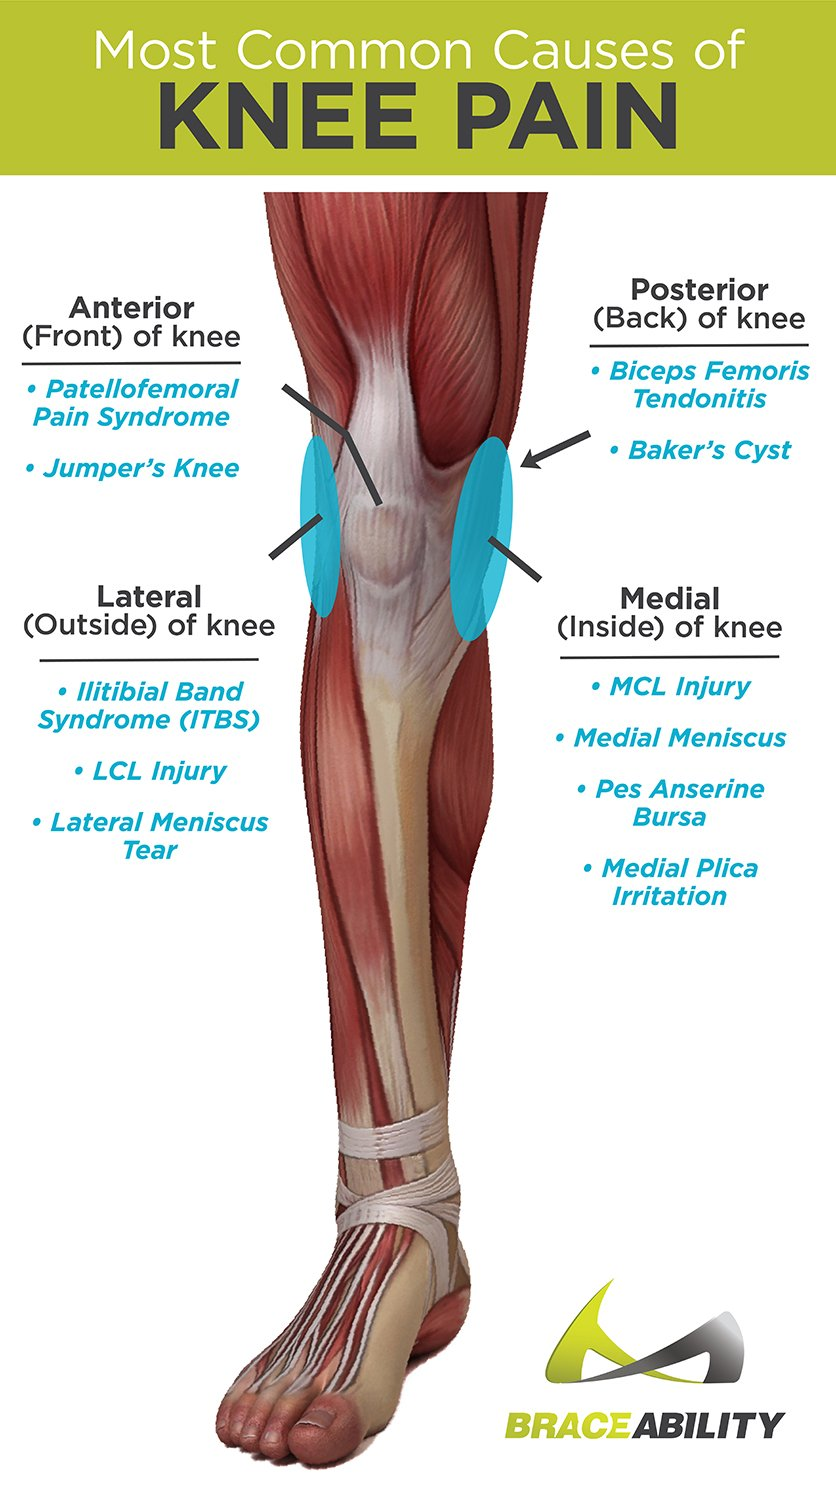 most-common-types-of-knee-pain-causing-jumpers-knee-mcl-tear-and